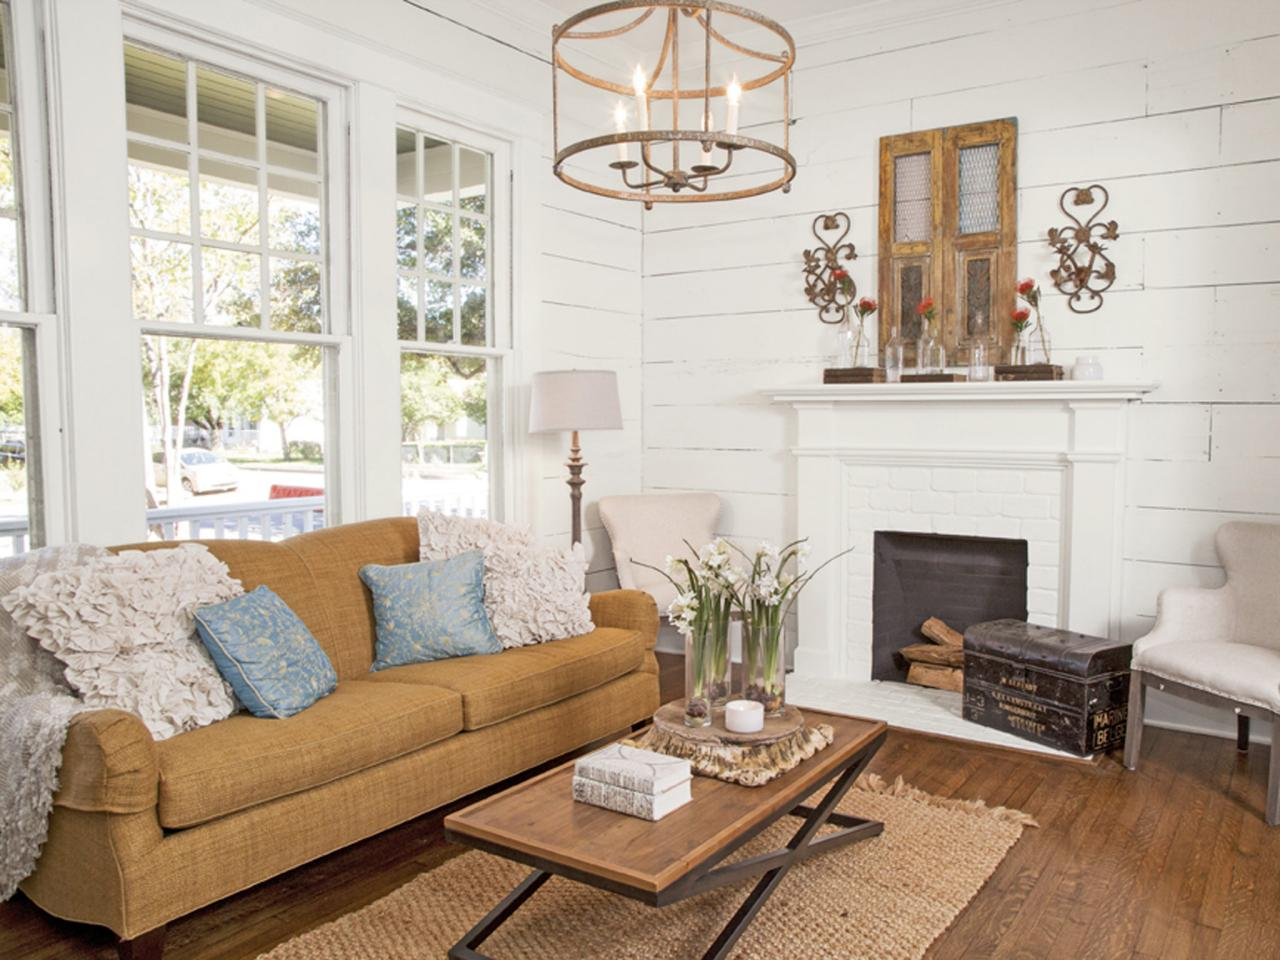 Decorating With Shiplap Ideas From HGTVs Fixer Upper HGTVs Fixer 1280x960